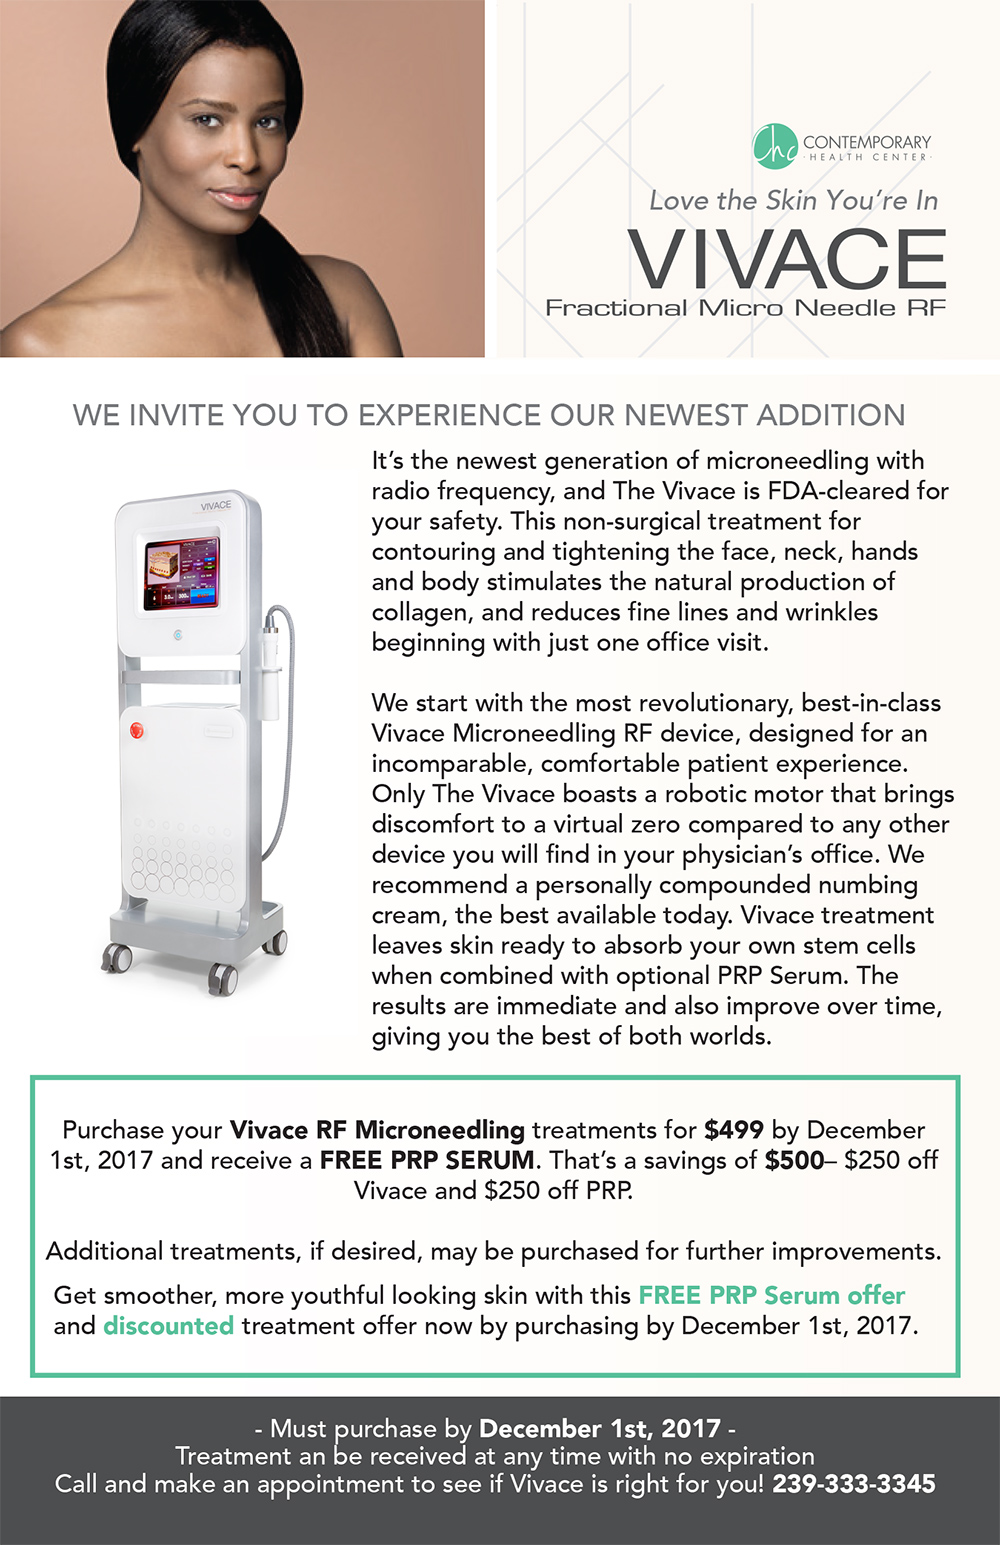 Vivace RF Microneedling treatments for $499 by December 1st